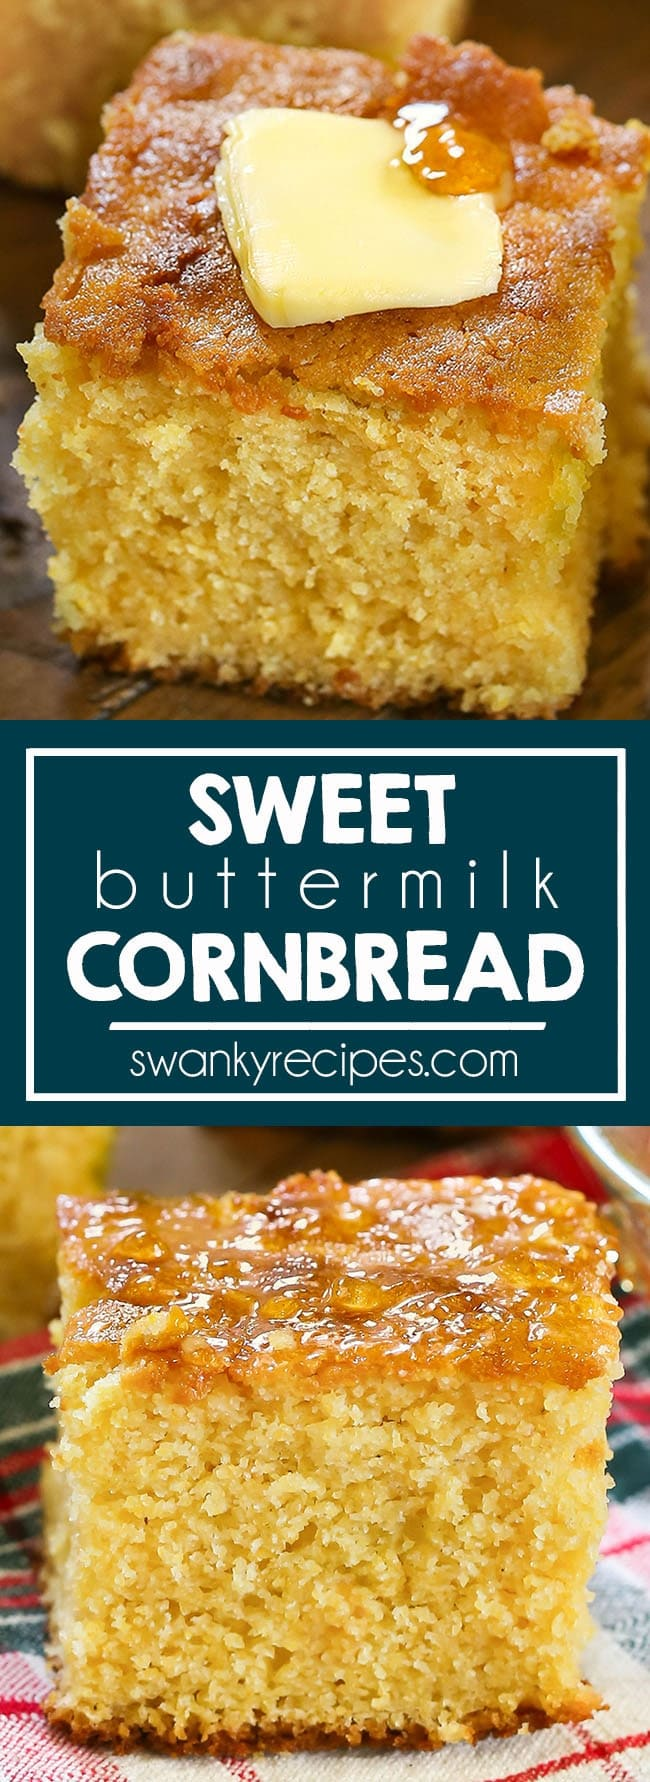 SWEETENED CORNBREAD. It's moist, dense, and has the most amazing flavor. Once you try this cornbread recipe, it'll quickly become a party staple.